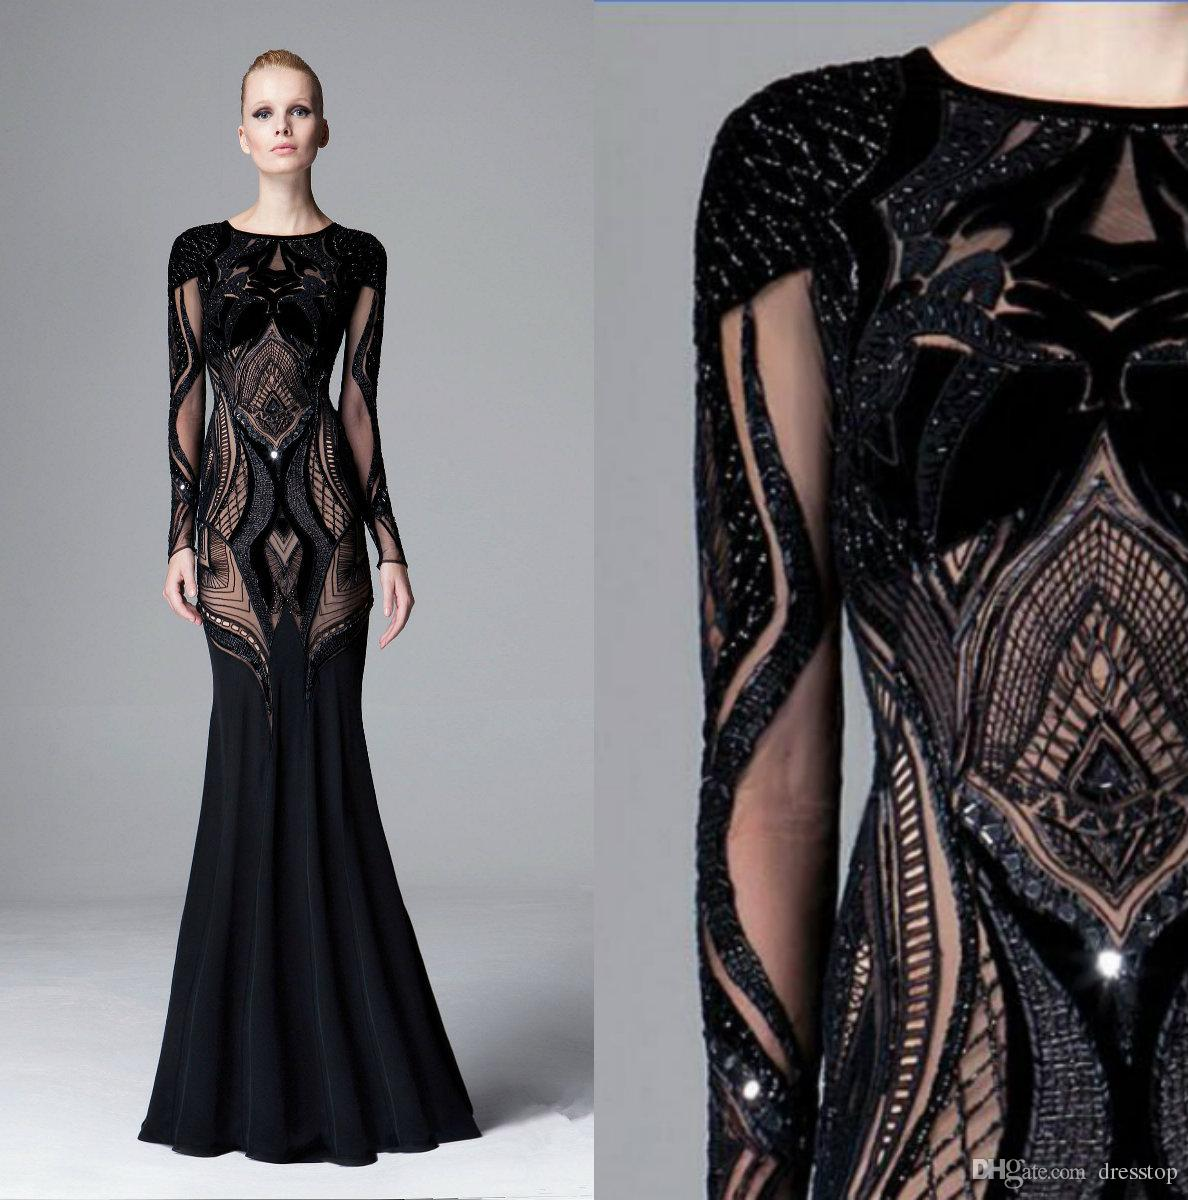 9562327c0f0 Zuhair Murad Dresses Evening Wear Long Sleeves Jewel Neck Black Sequined  Prom Dress Floor Length Mermaid Lace Formal Party Gown 2017 Fall Ivory  Evening ...